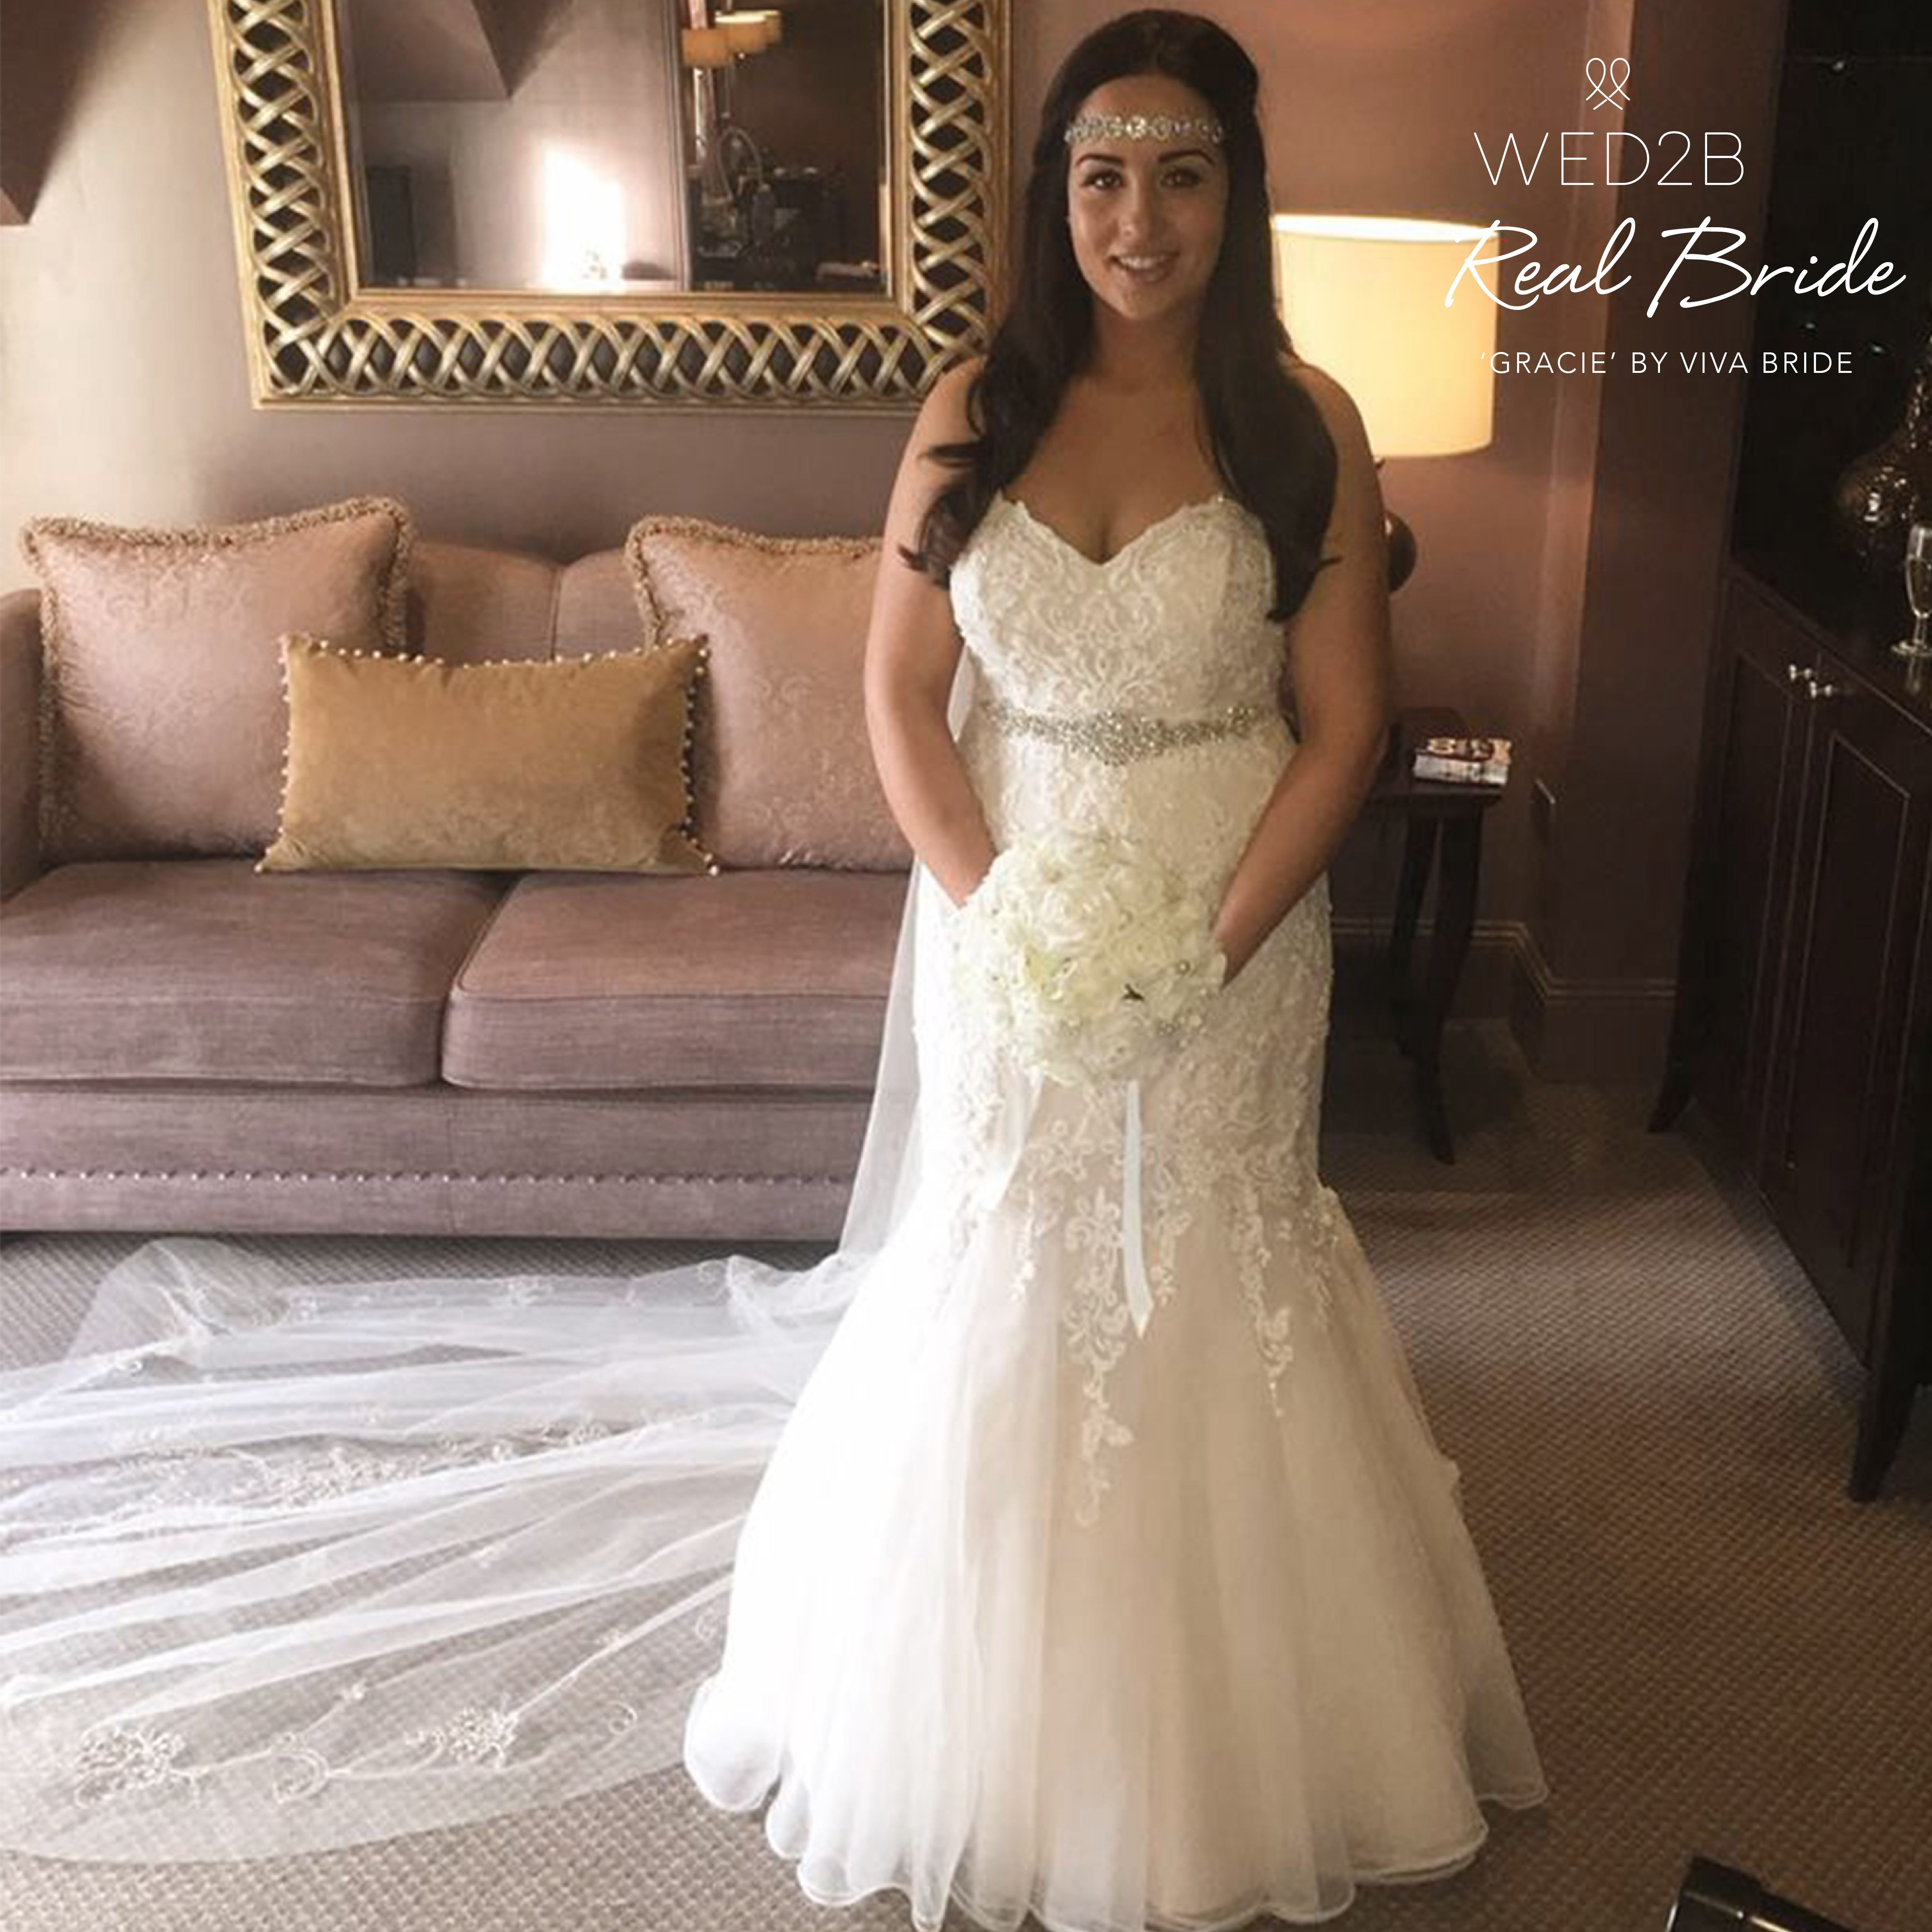 Real Brides Wed2b: Stunning Real Bride Claire Looks Amazing In 'Gracie' By